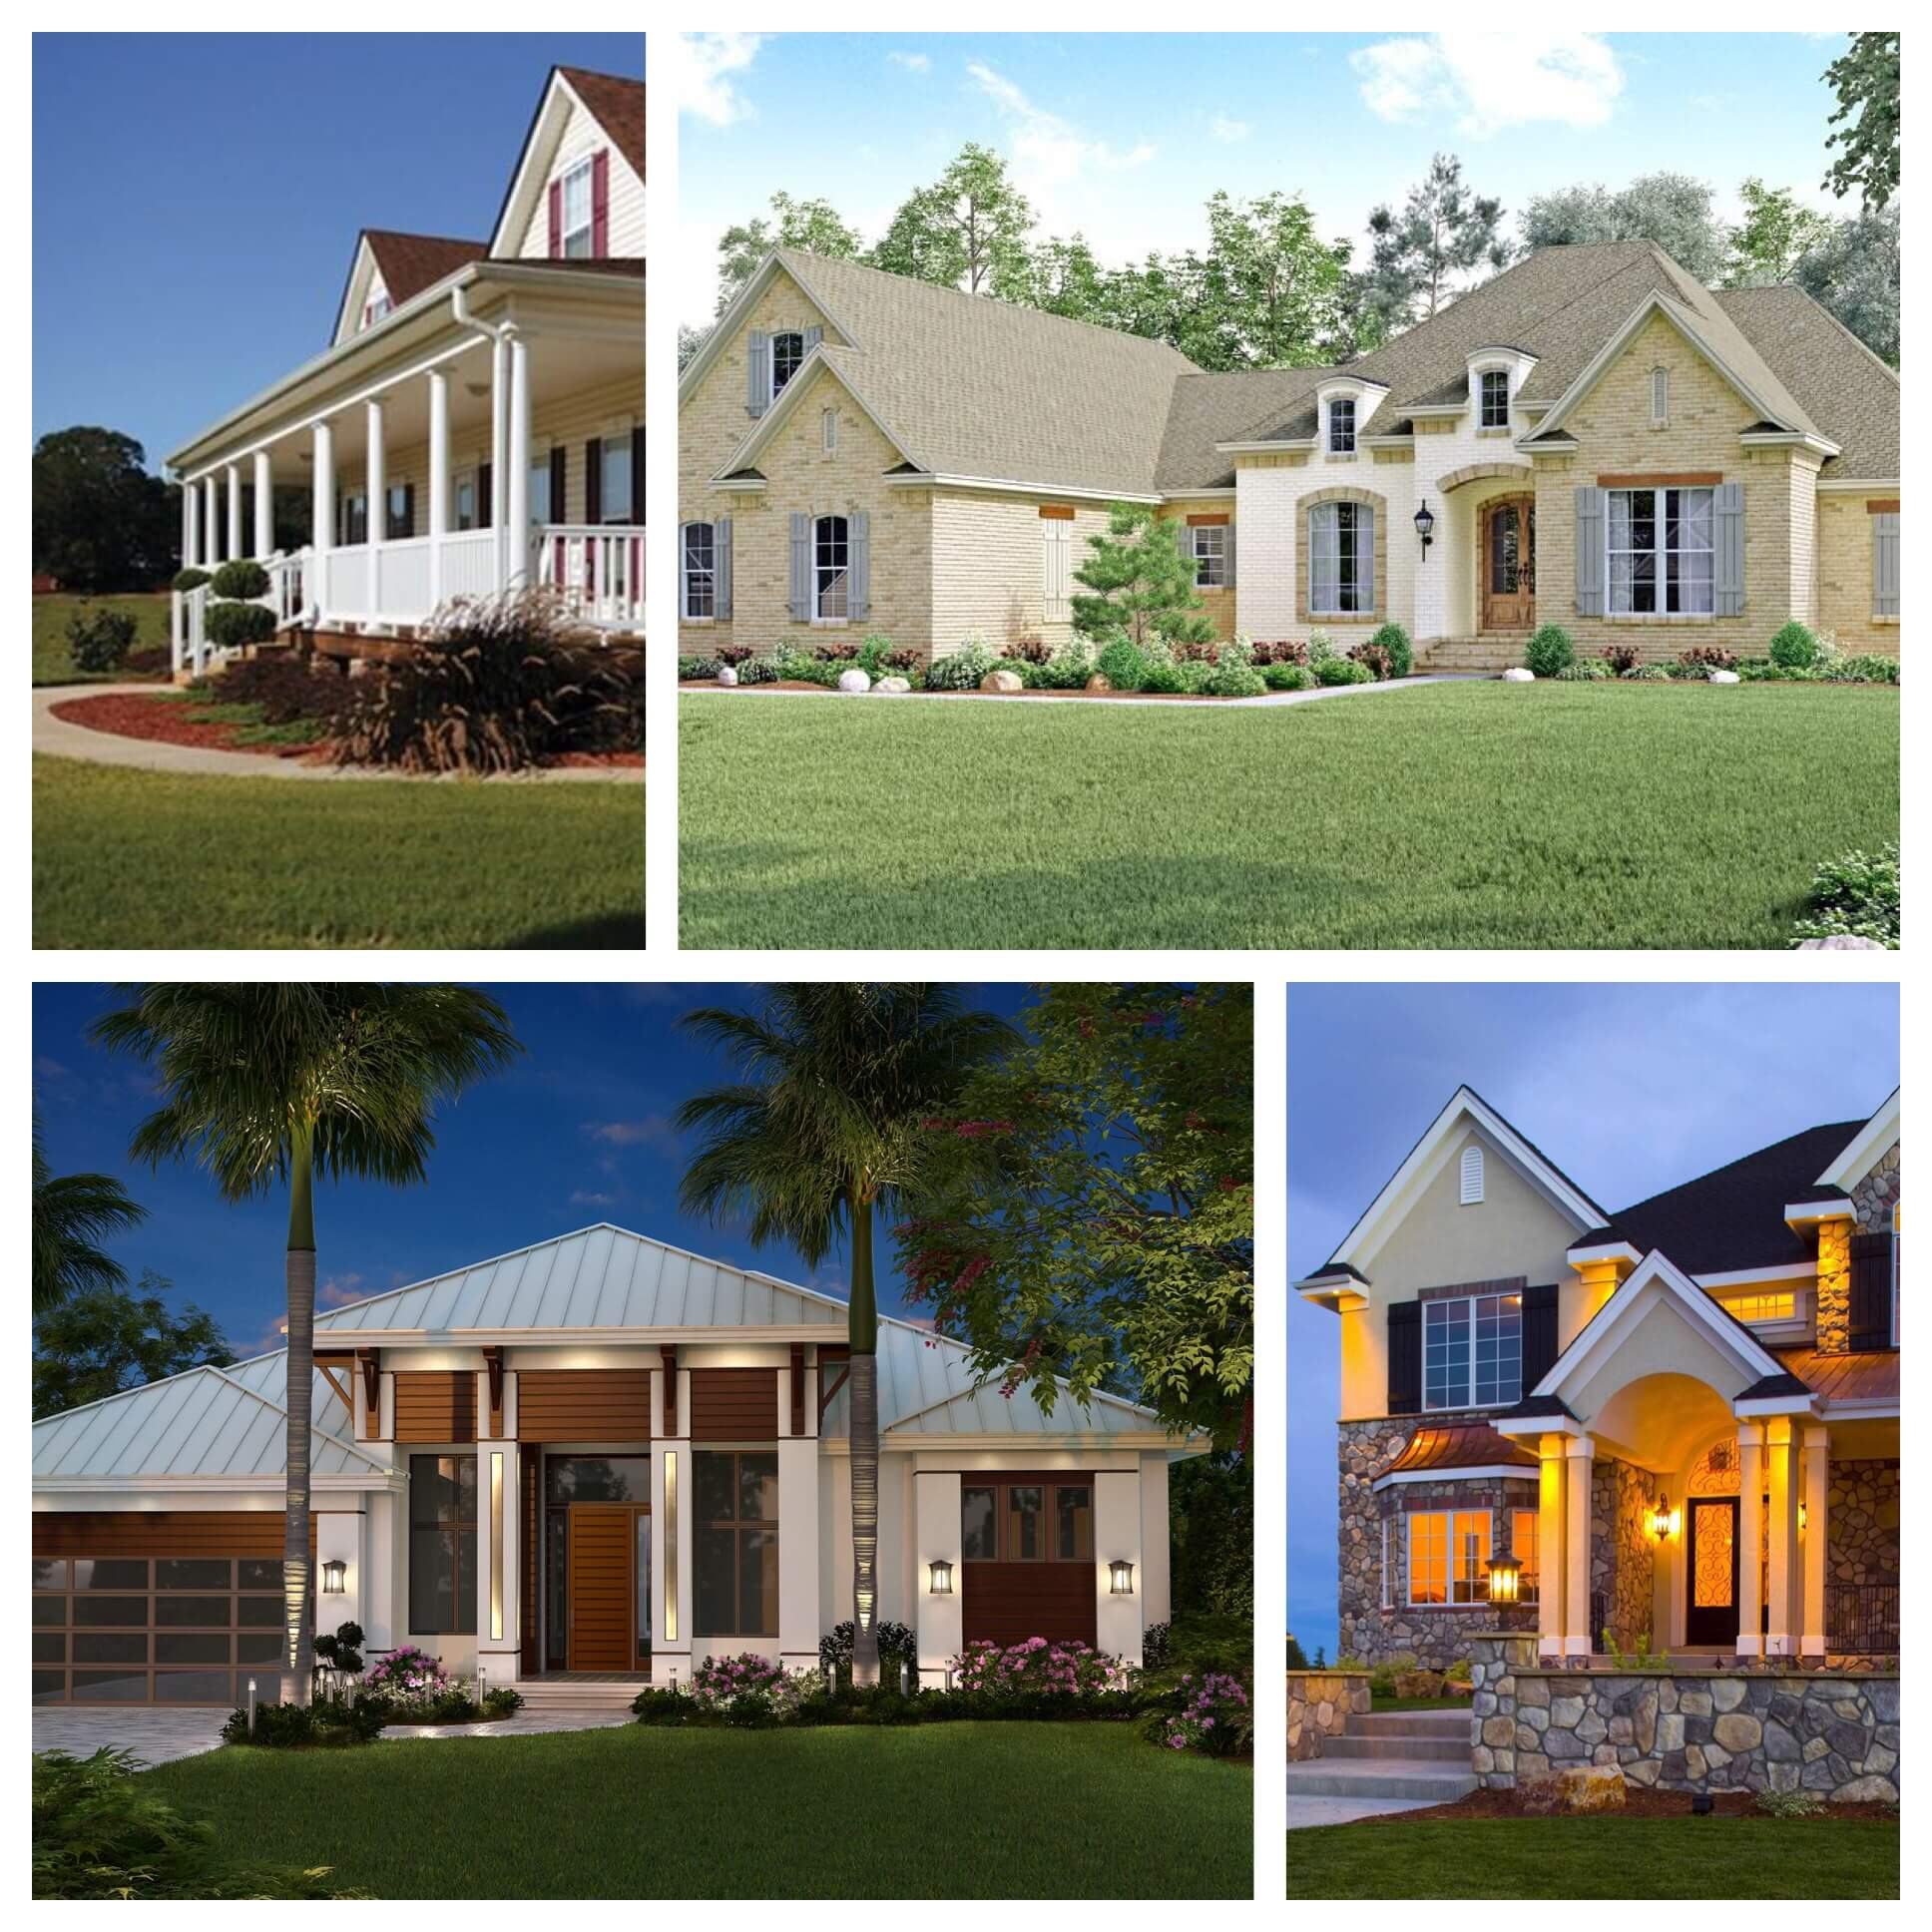 Examples of the many architectural styles for house plans available at The Plan Collection.